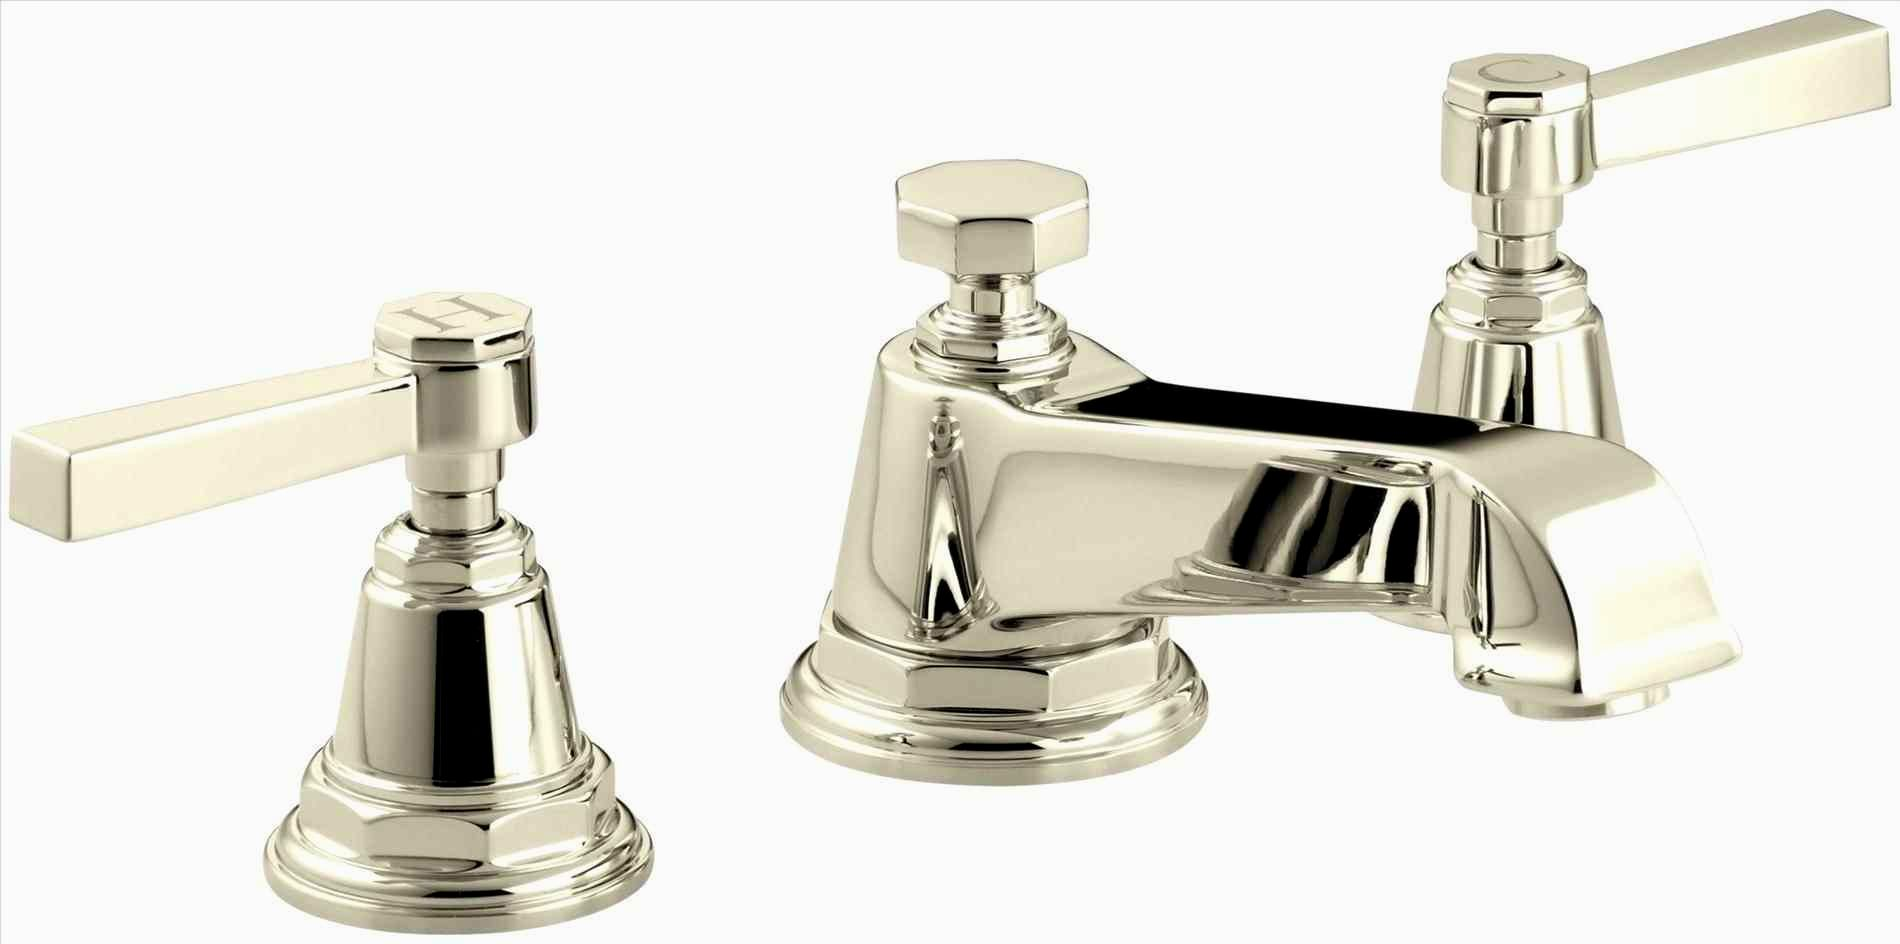 best of price pfister bathroom faucet decoration-Fantastic Price Pfister Bathroom Faucet Picture